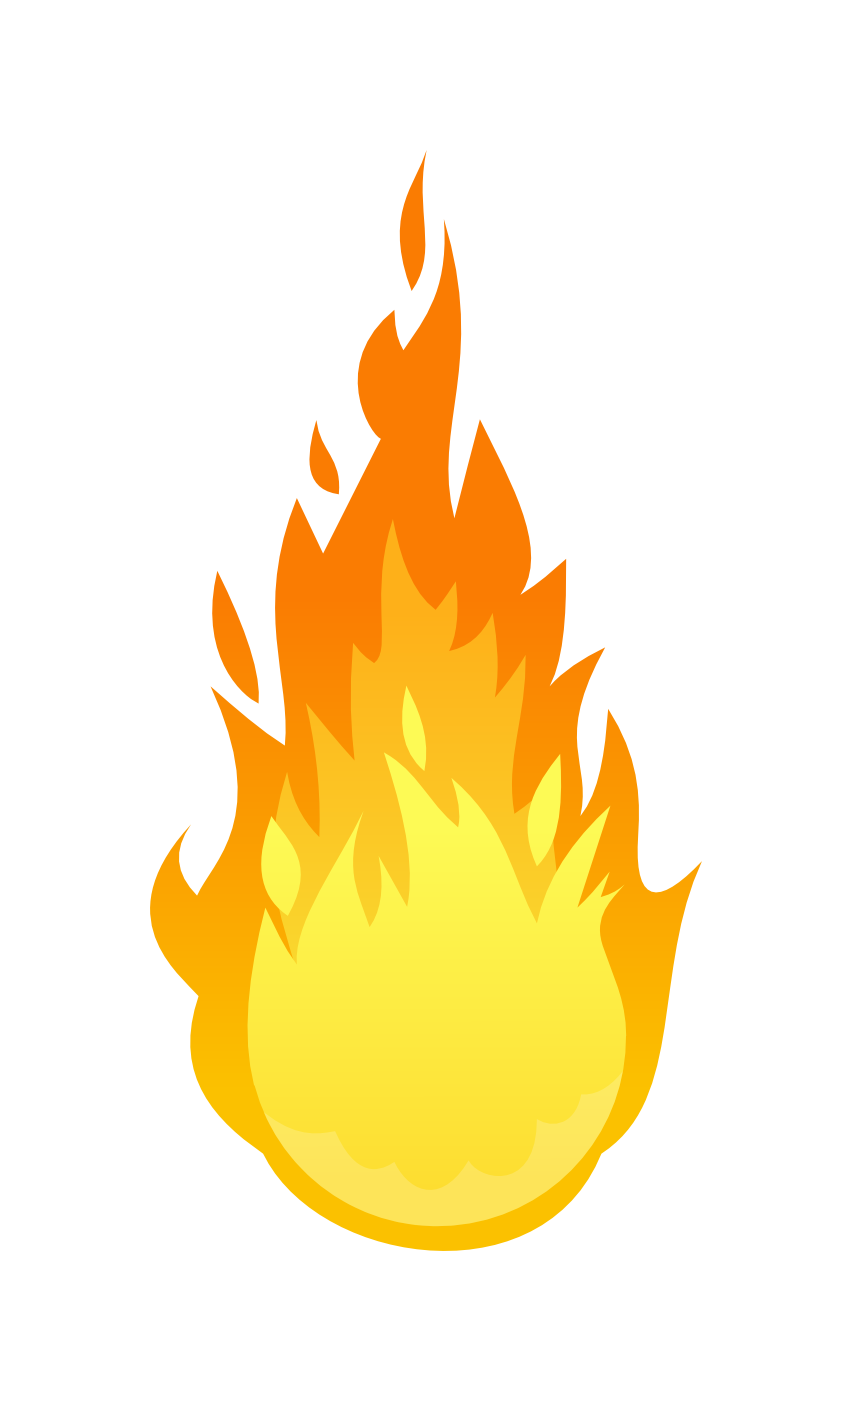 Small clip art images. Fire clipart hand